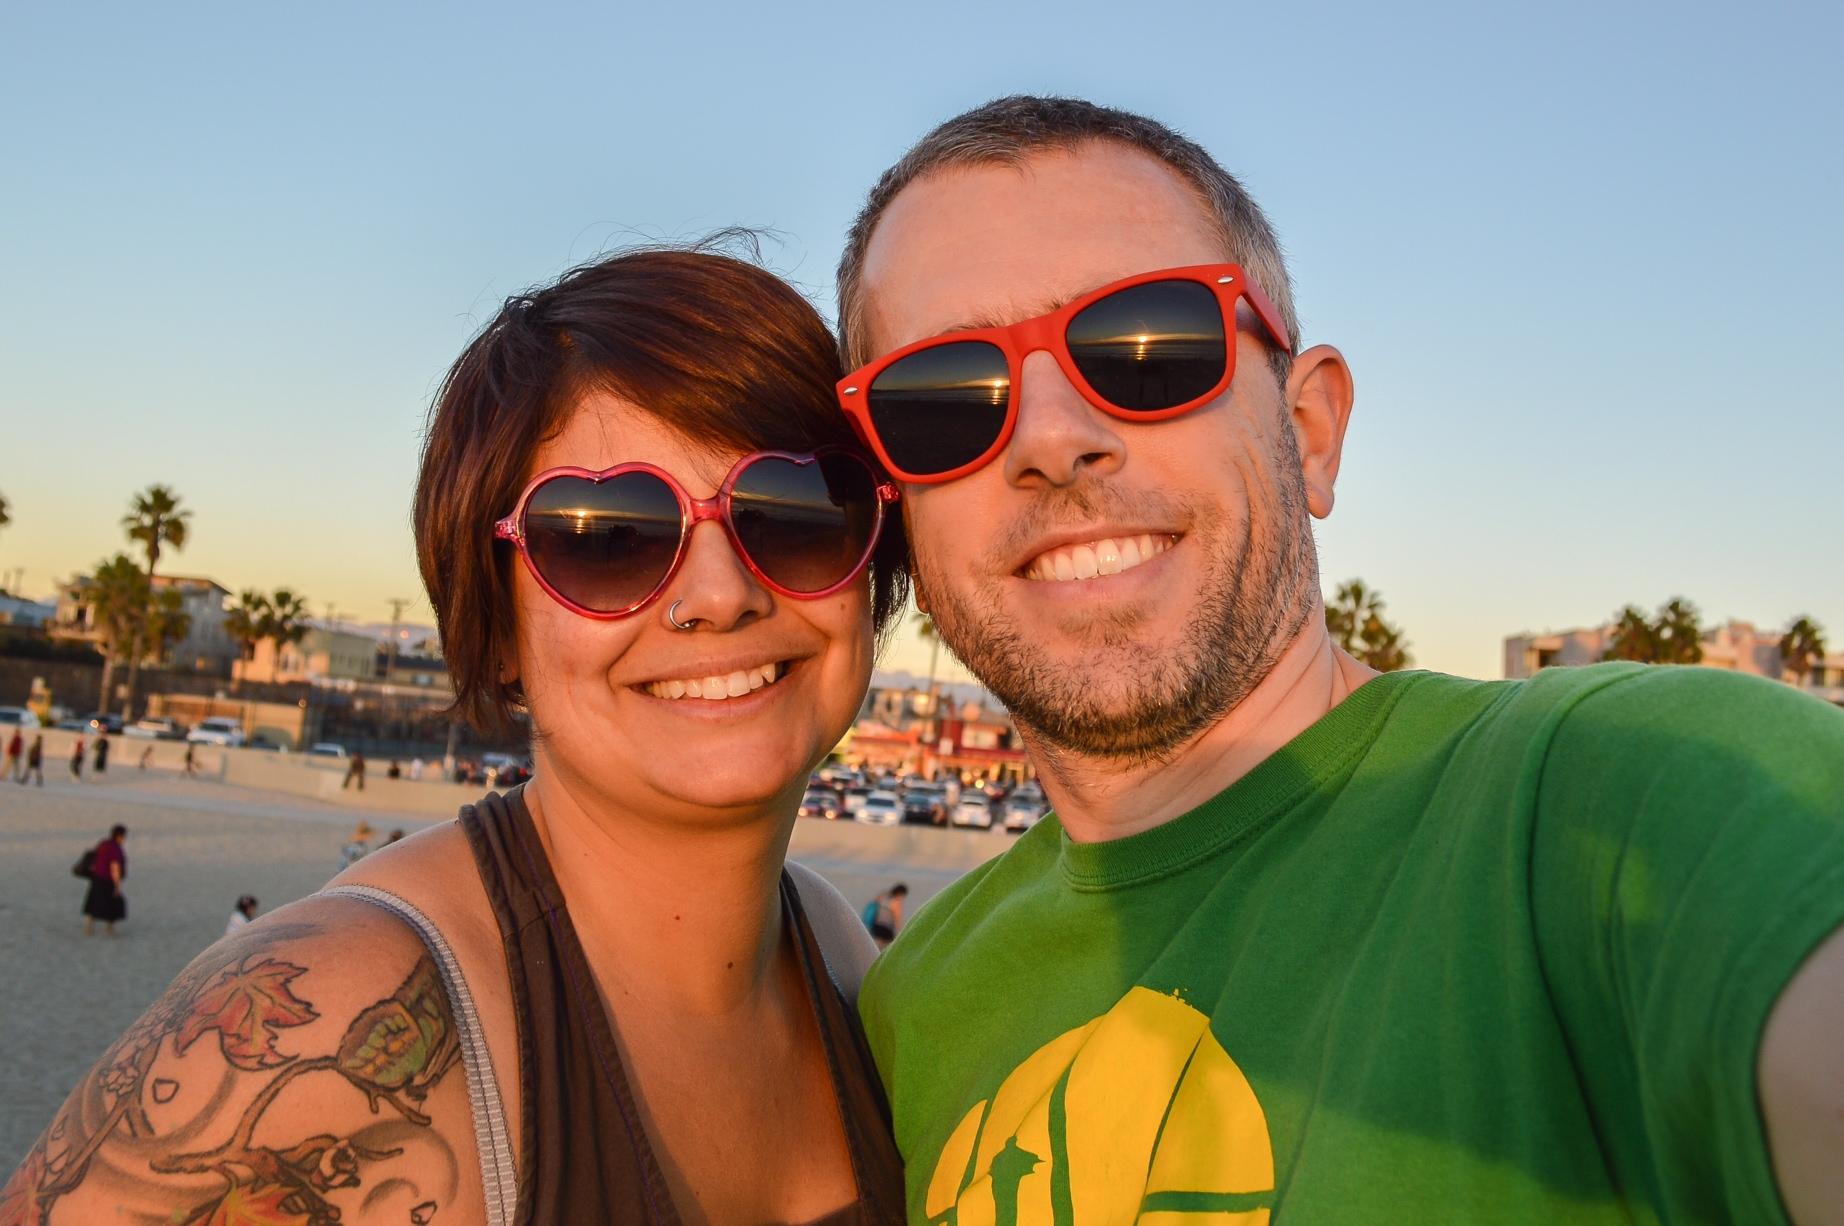 Soaking up the sun on Venice Beach. One of the many beautiful places this crazy journey has already taken us.